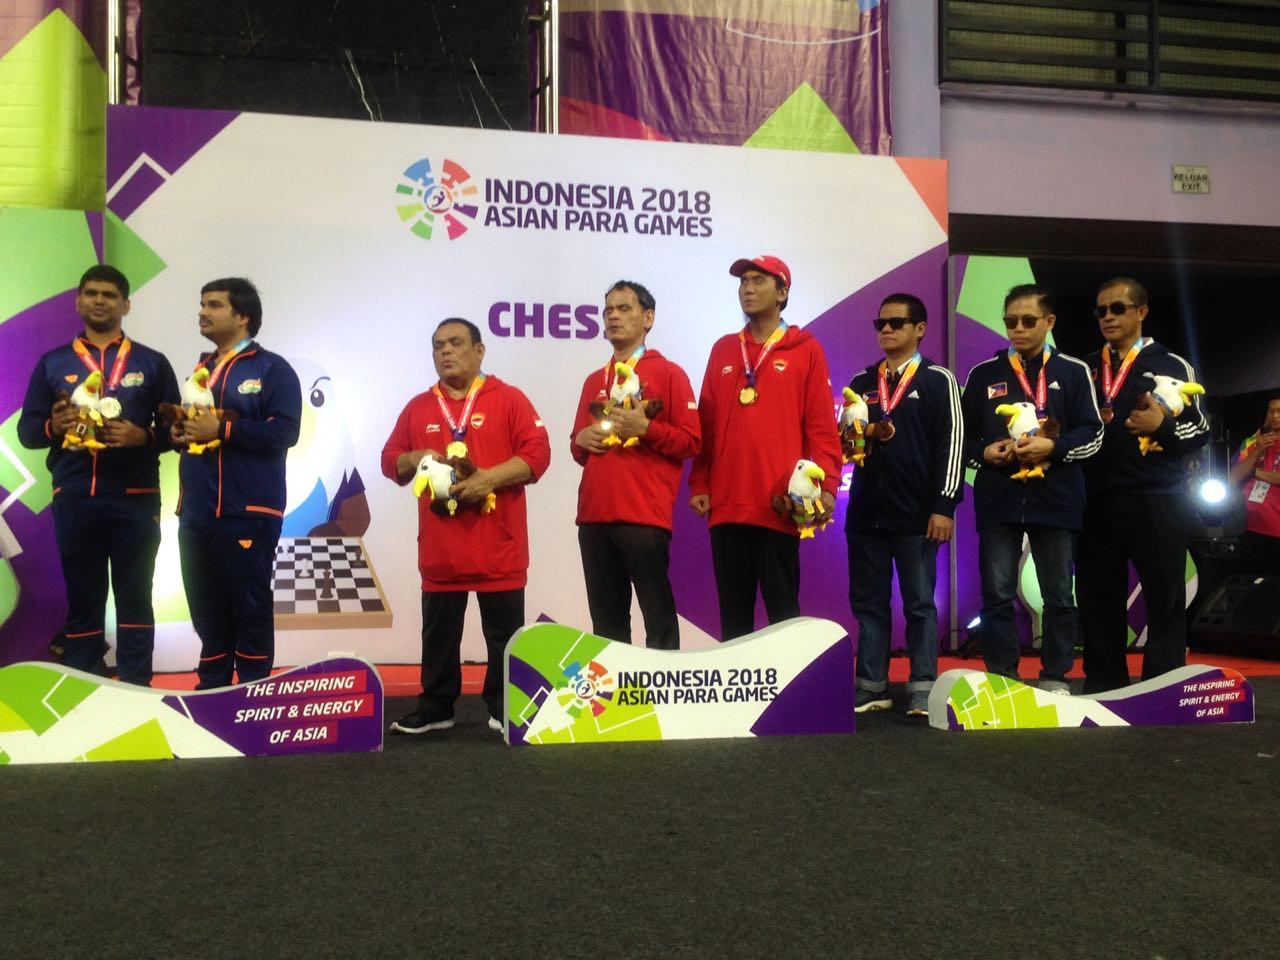 Hosts Indonesia won 11 gold medals in the chess ©Asian Para Games